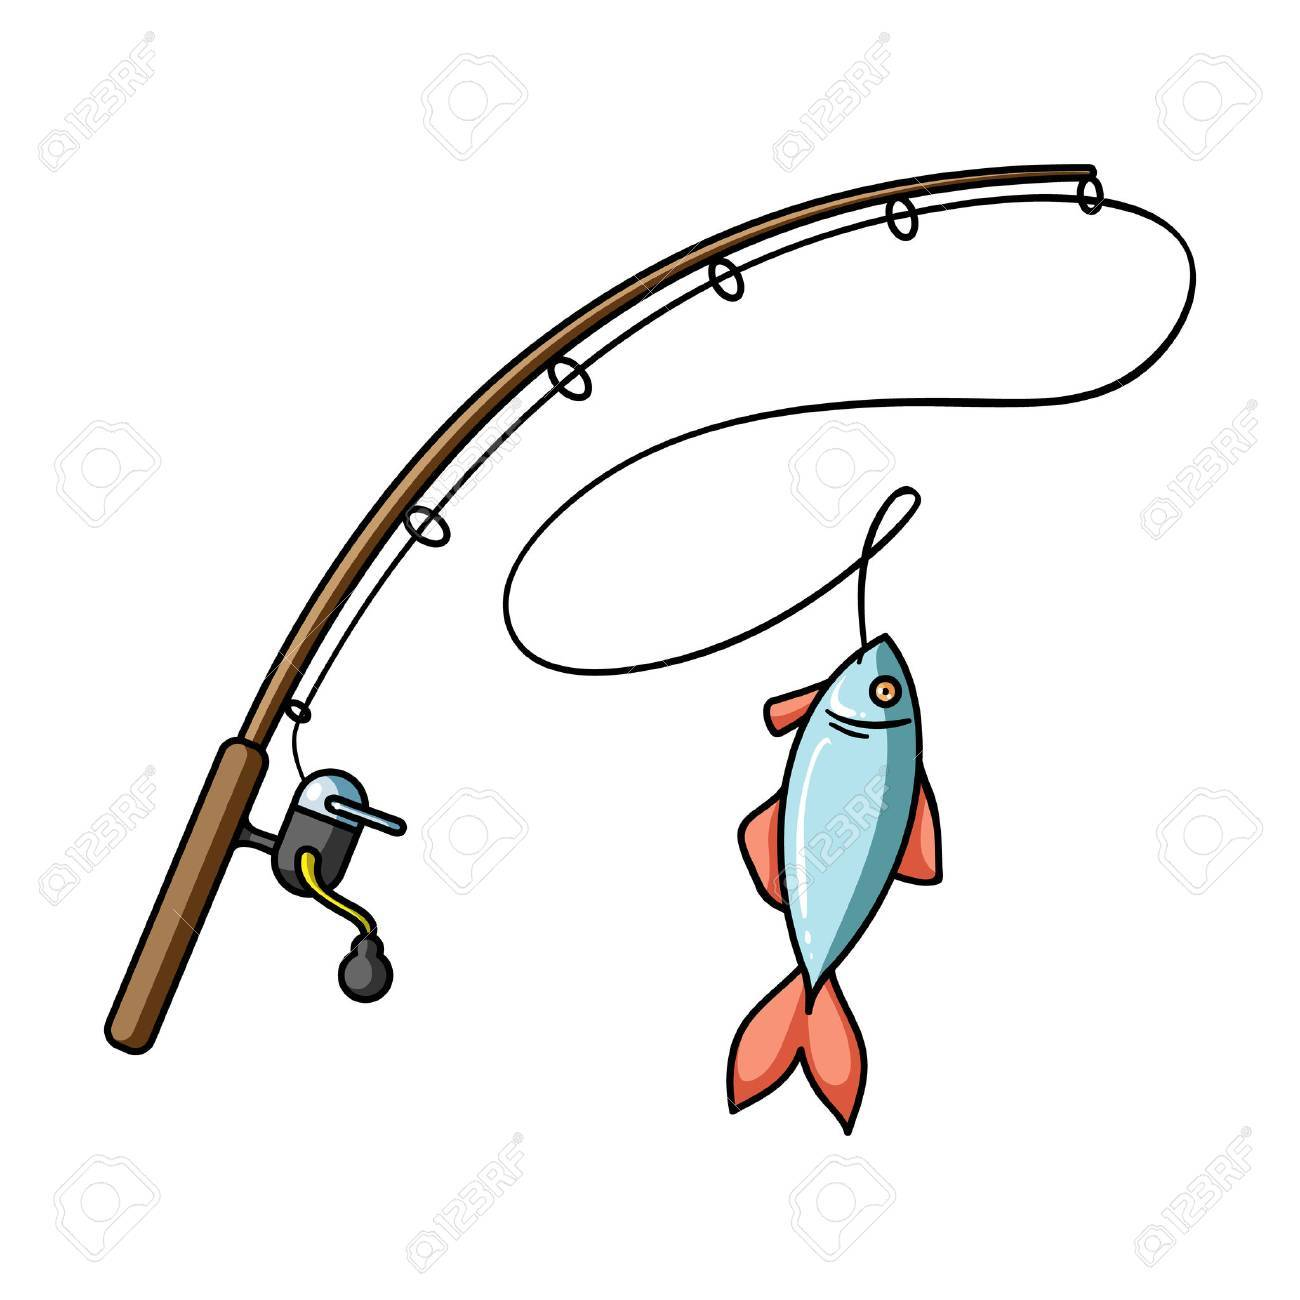 Fishing rod and fish icon in cartoon style isolated on white background. Fishing symbol stock vector illustration. - 68574475